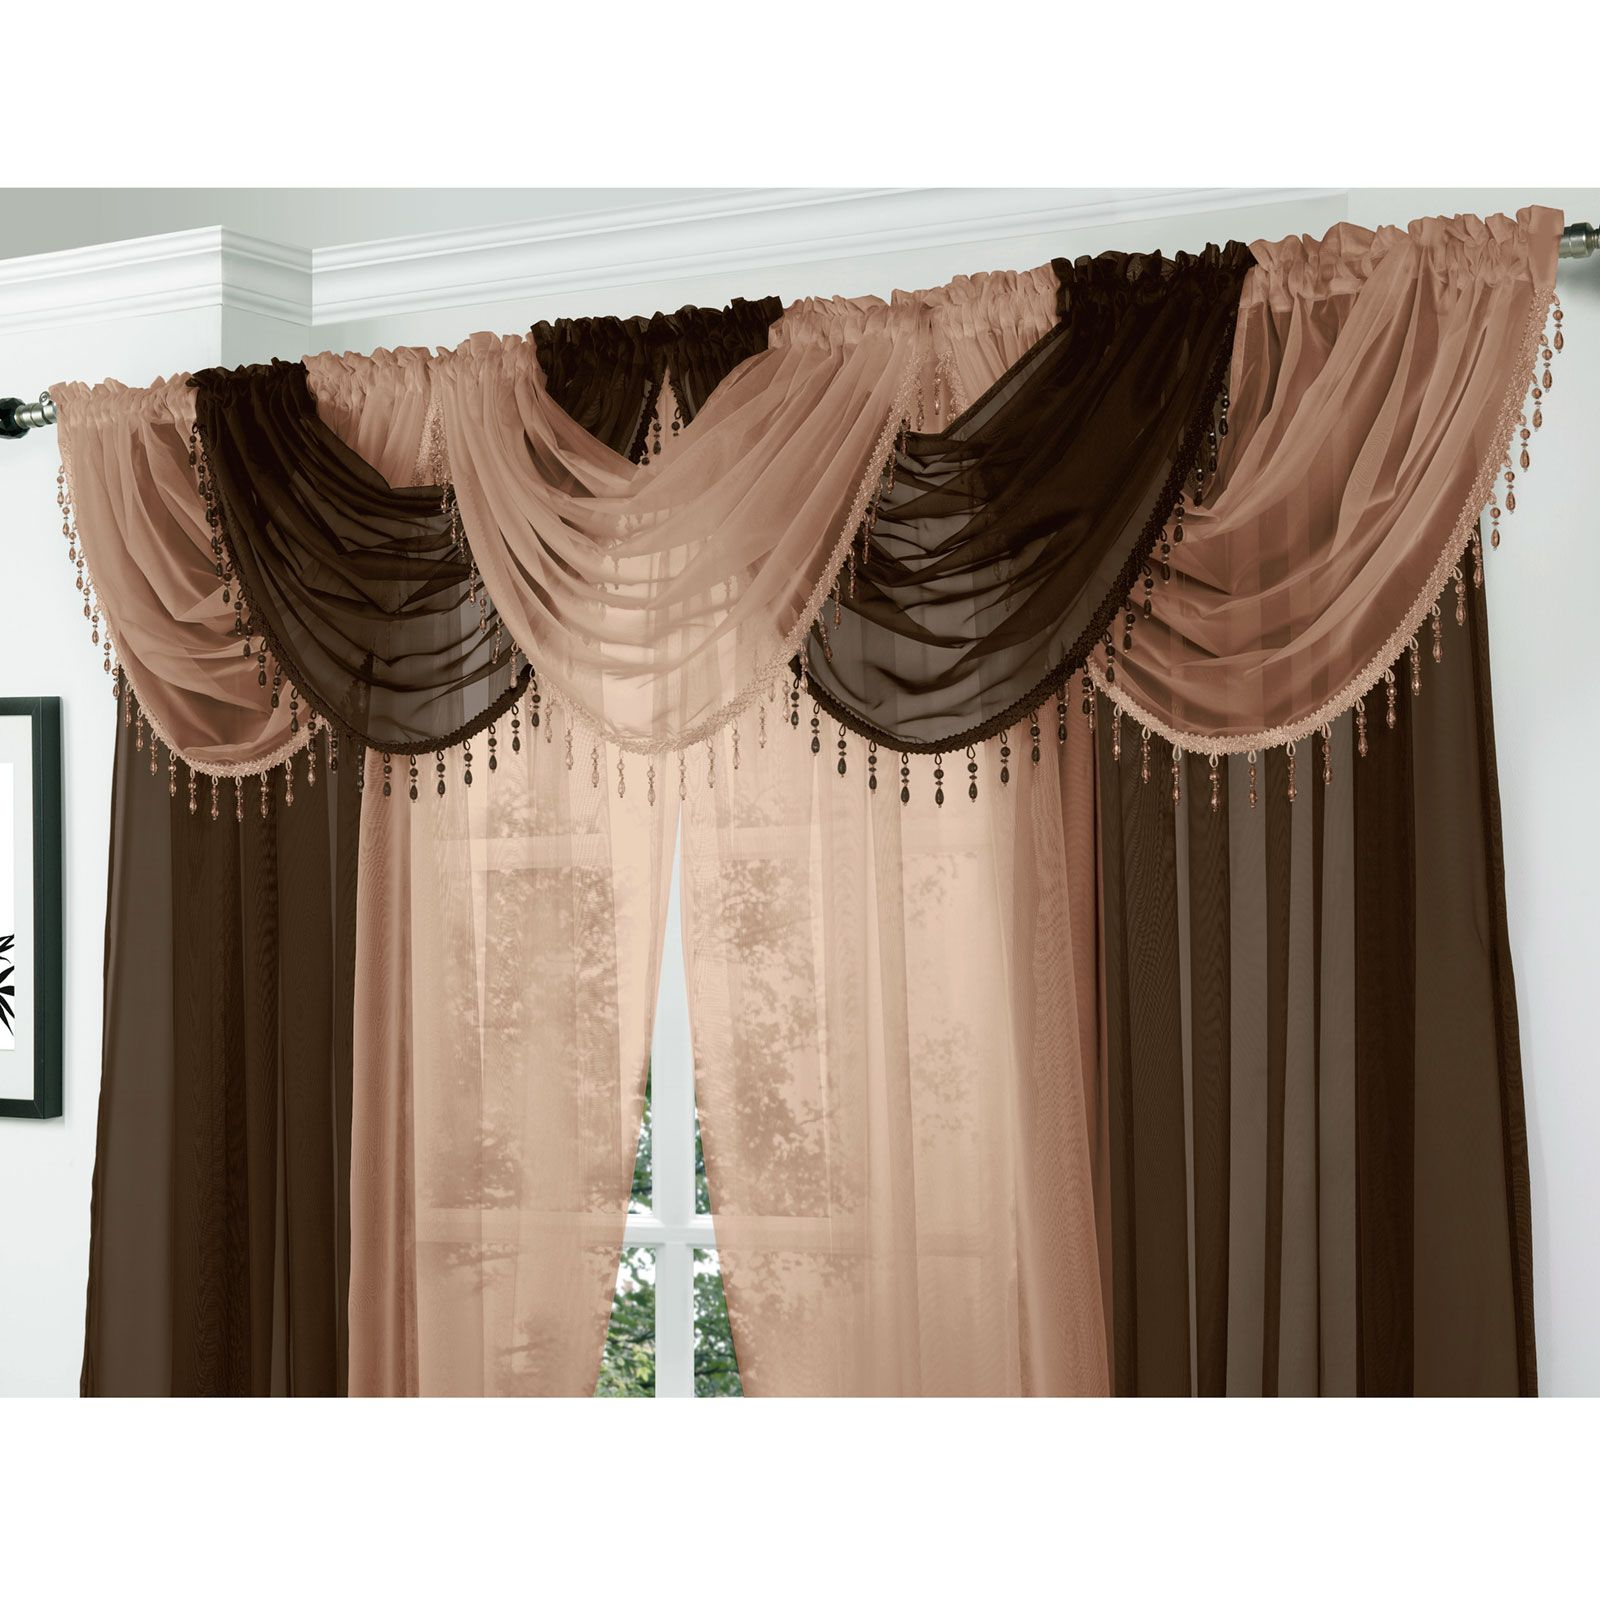 Black out curtains elegant valance curtains beaded valance curtains - Crystal Beaded Voile Swag Net Valance Pelmet For Curtains Slot Top Single